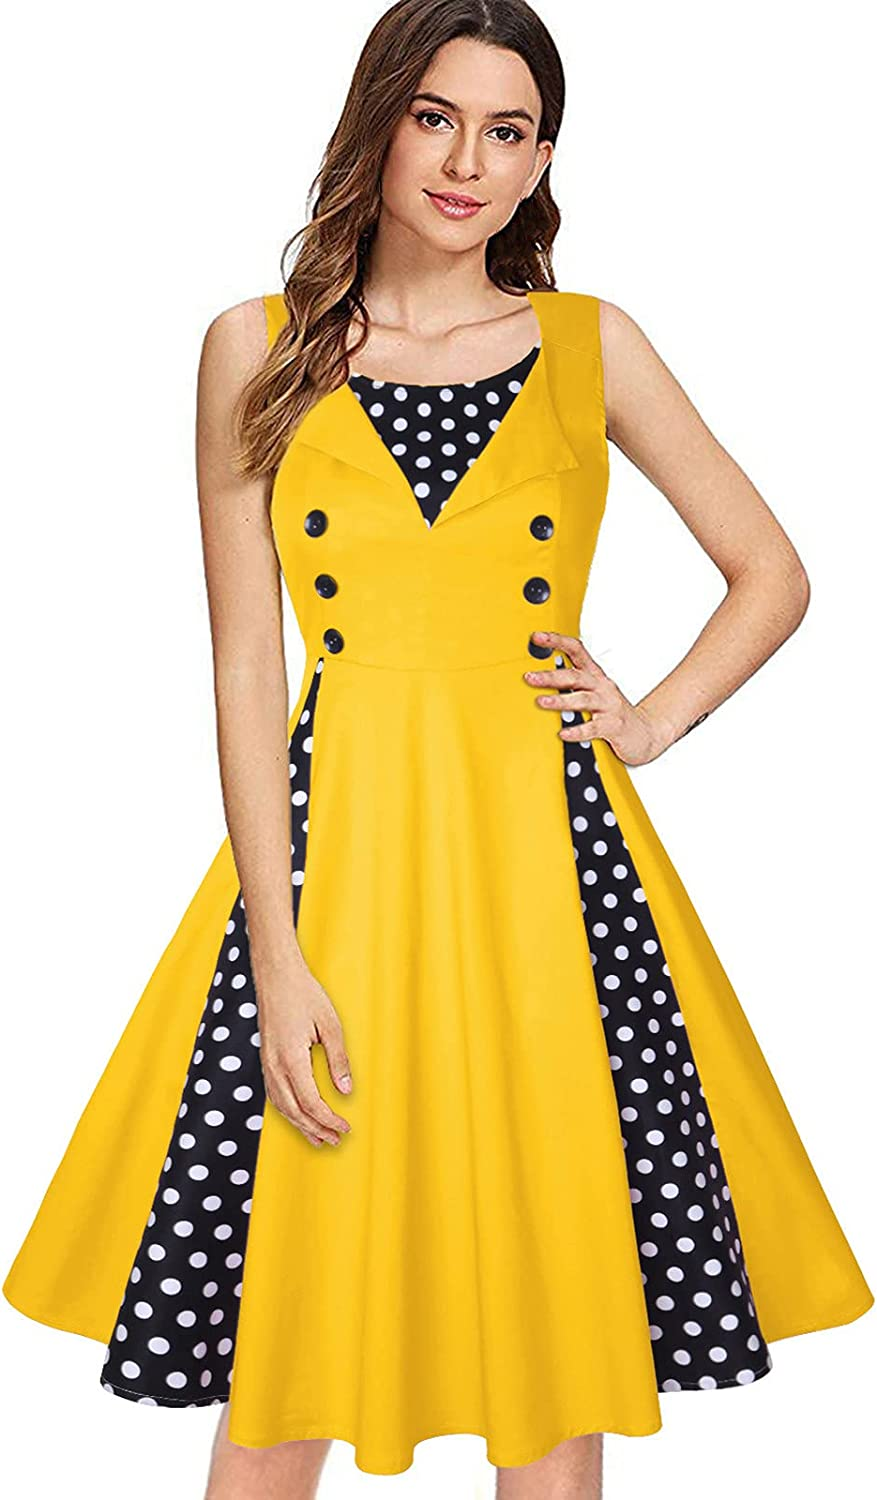 A2A Wedding Guest Dresses for Women,Women's 50s 60s Vintage Sleeveless V-Neck Cocktail Swing Dress Casual Sundress